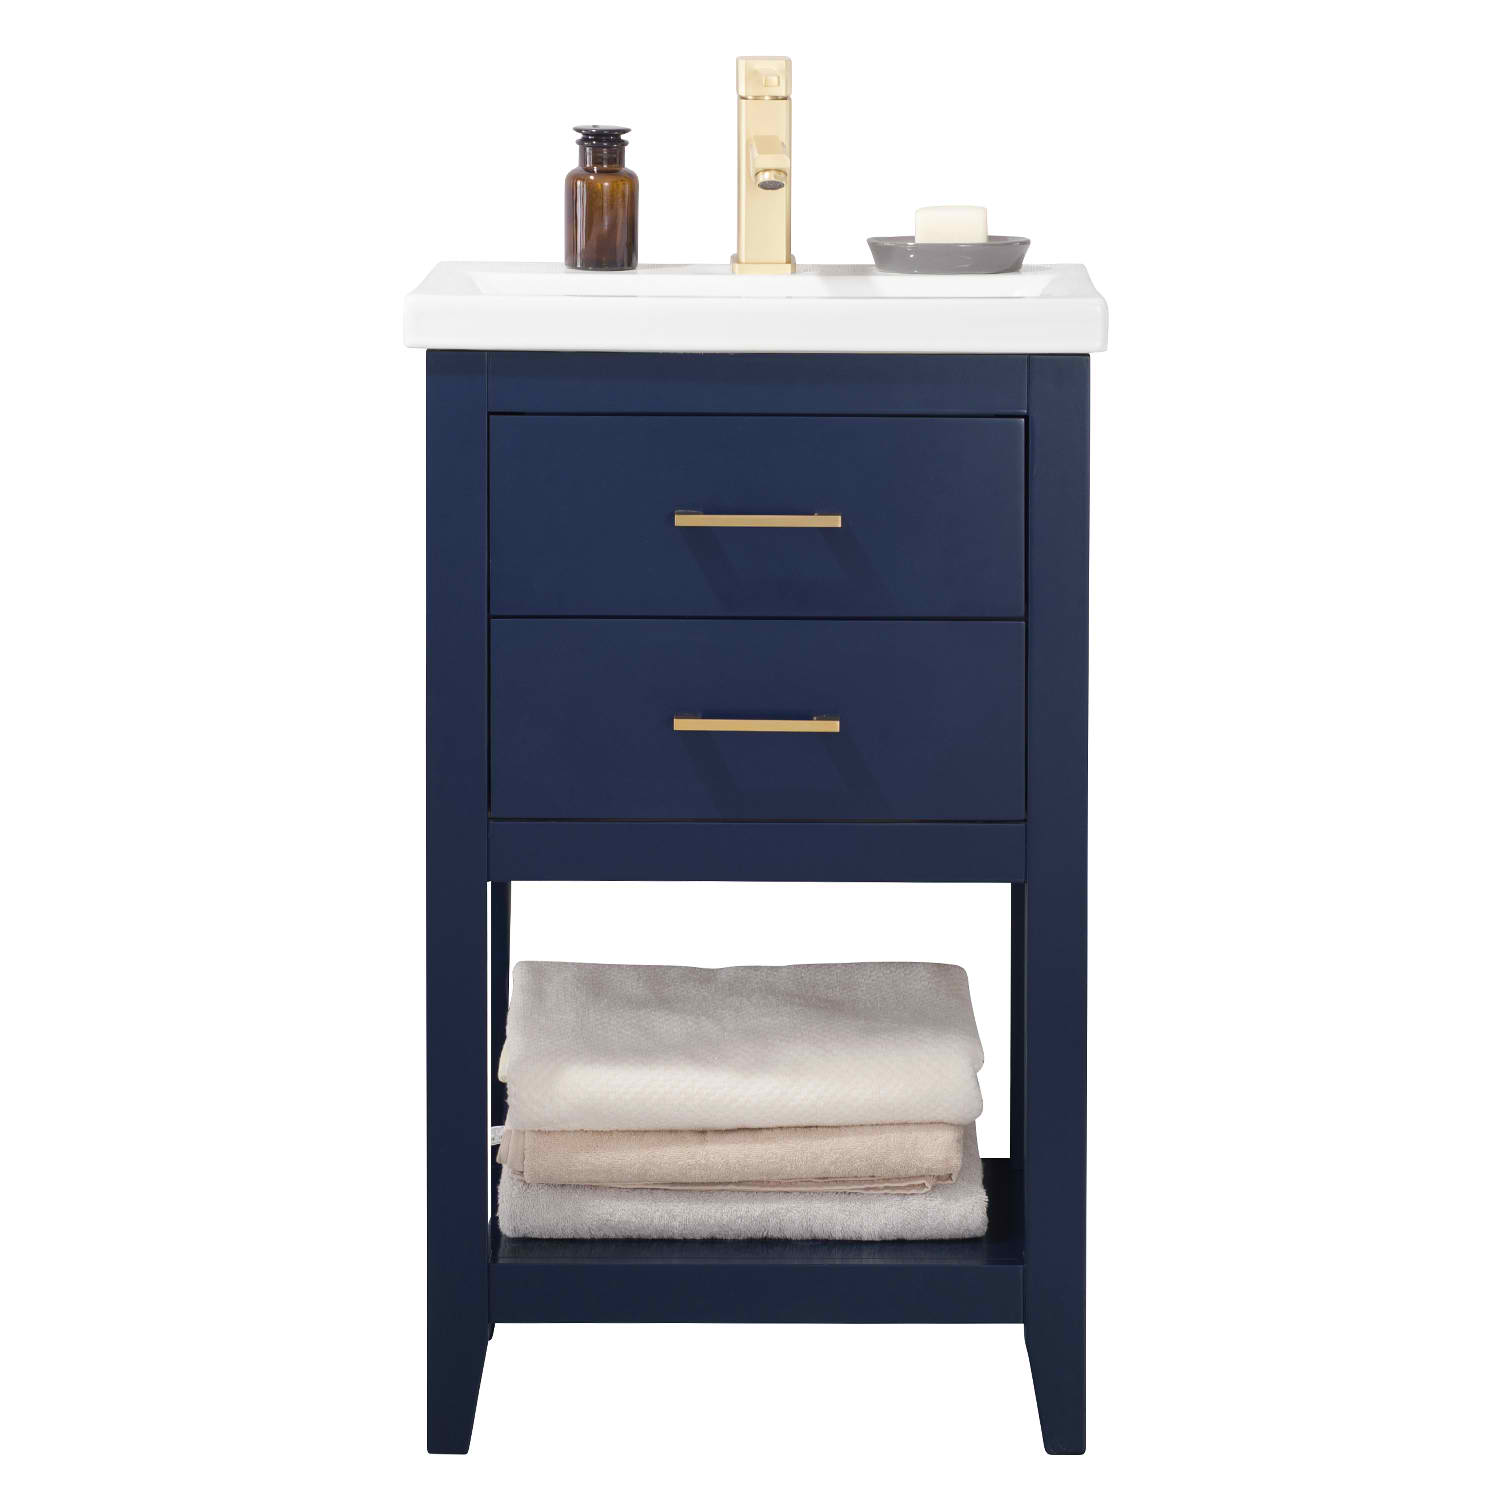 "20"" Modern Single Sink Vanity with Porcelain Integrated Counterop and Sink in Blue Finish"